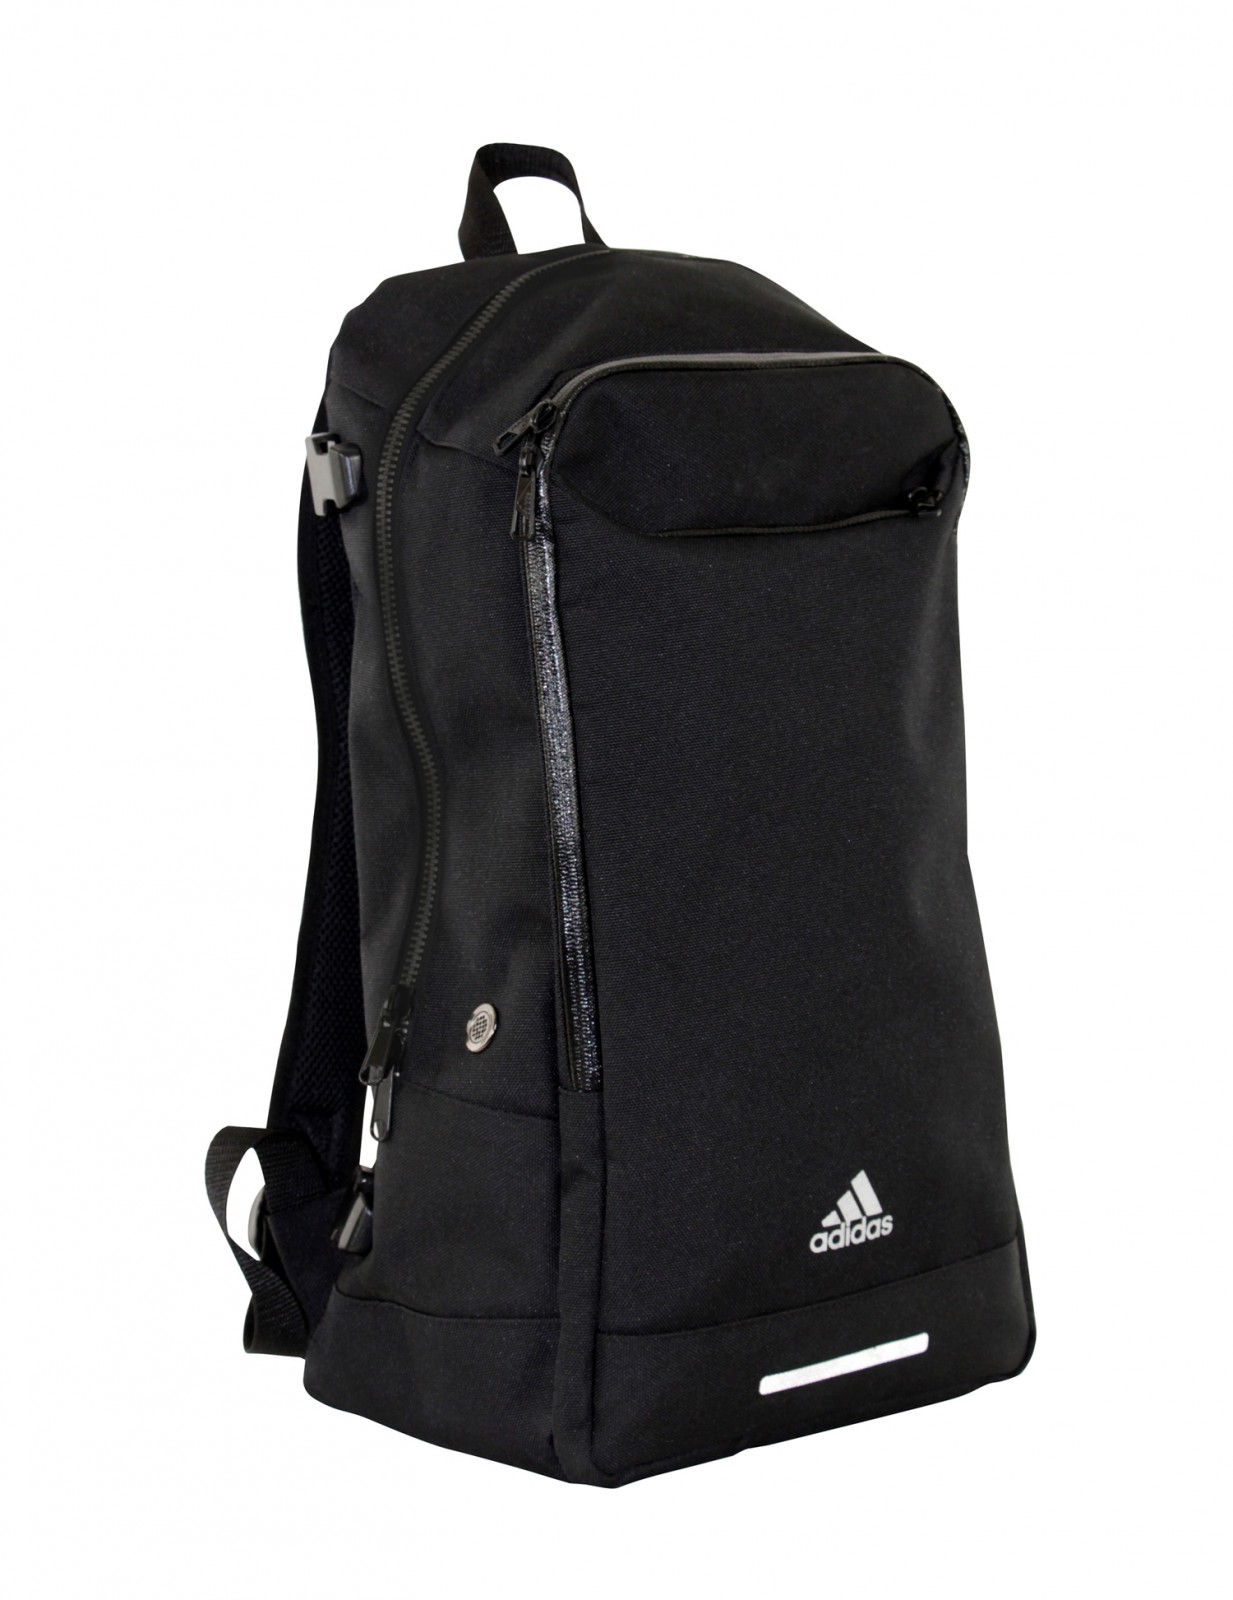 adidas training backpack rucksack sporttasche fitness. Black Bedroom Furniture Sets. Home Design Ideas